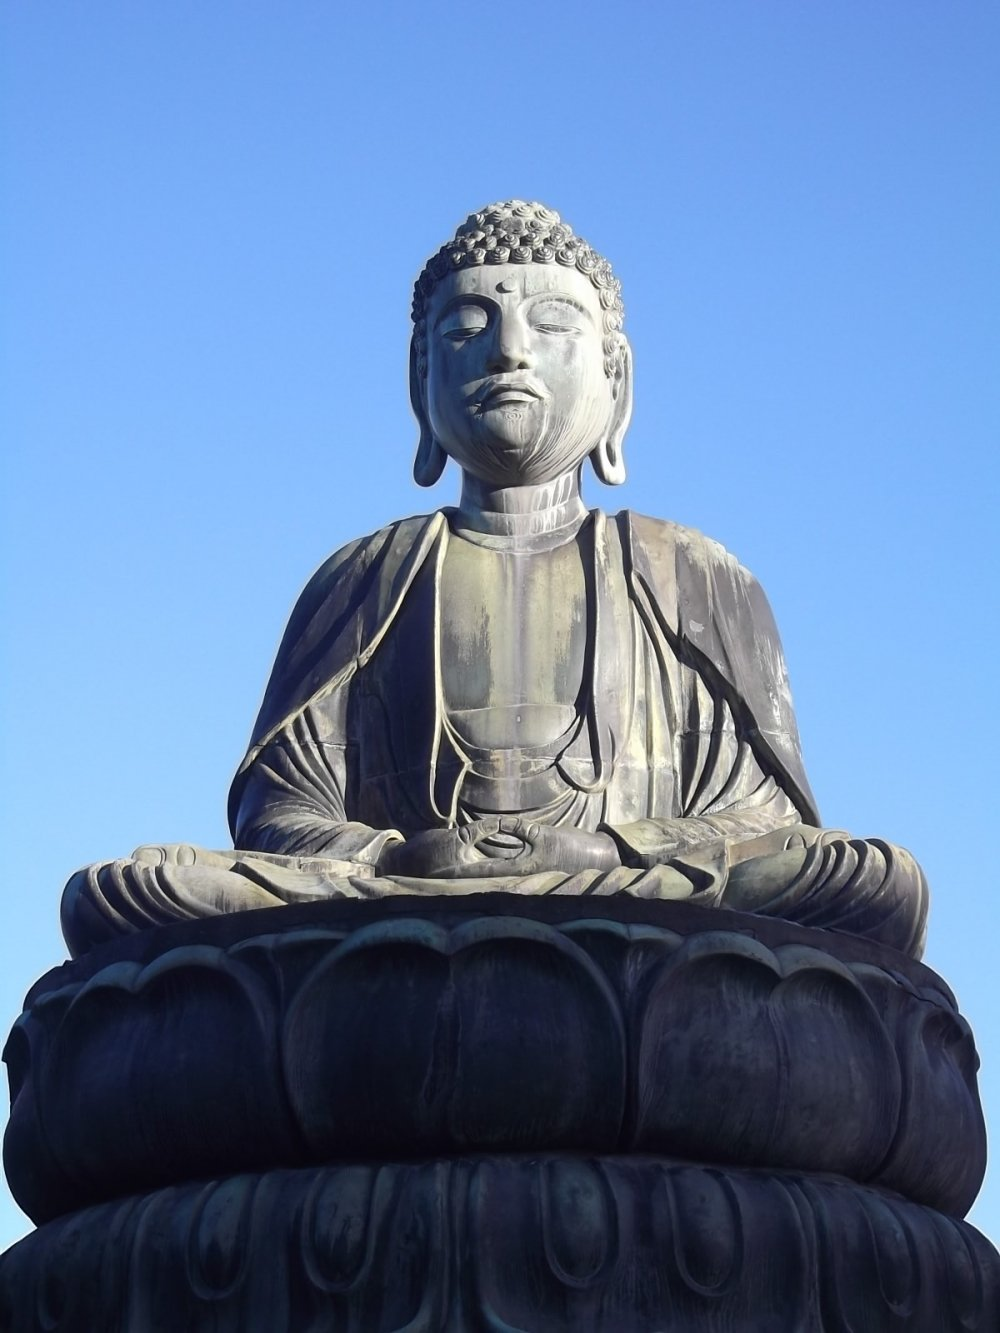 A close-up of the Buddha's serene posture and face